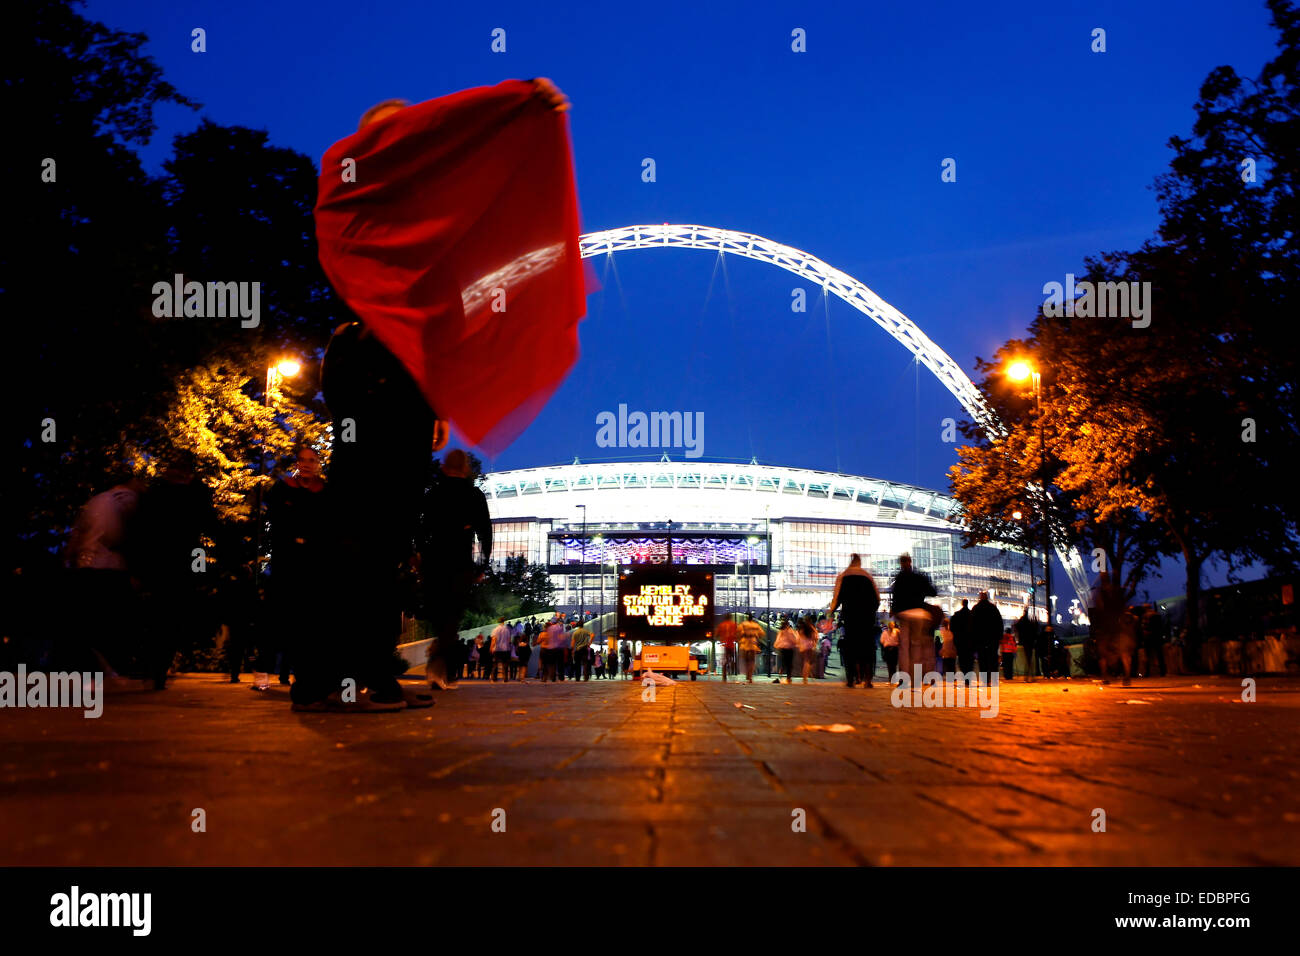 Football supporters before an FA match arrives to the Wembley Arena - Stock Image